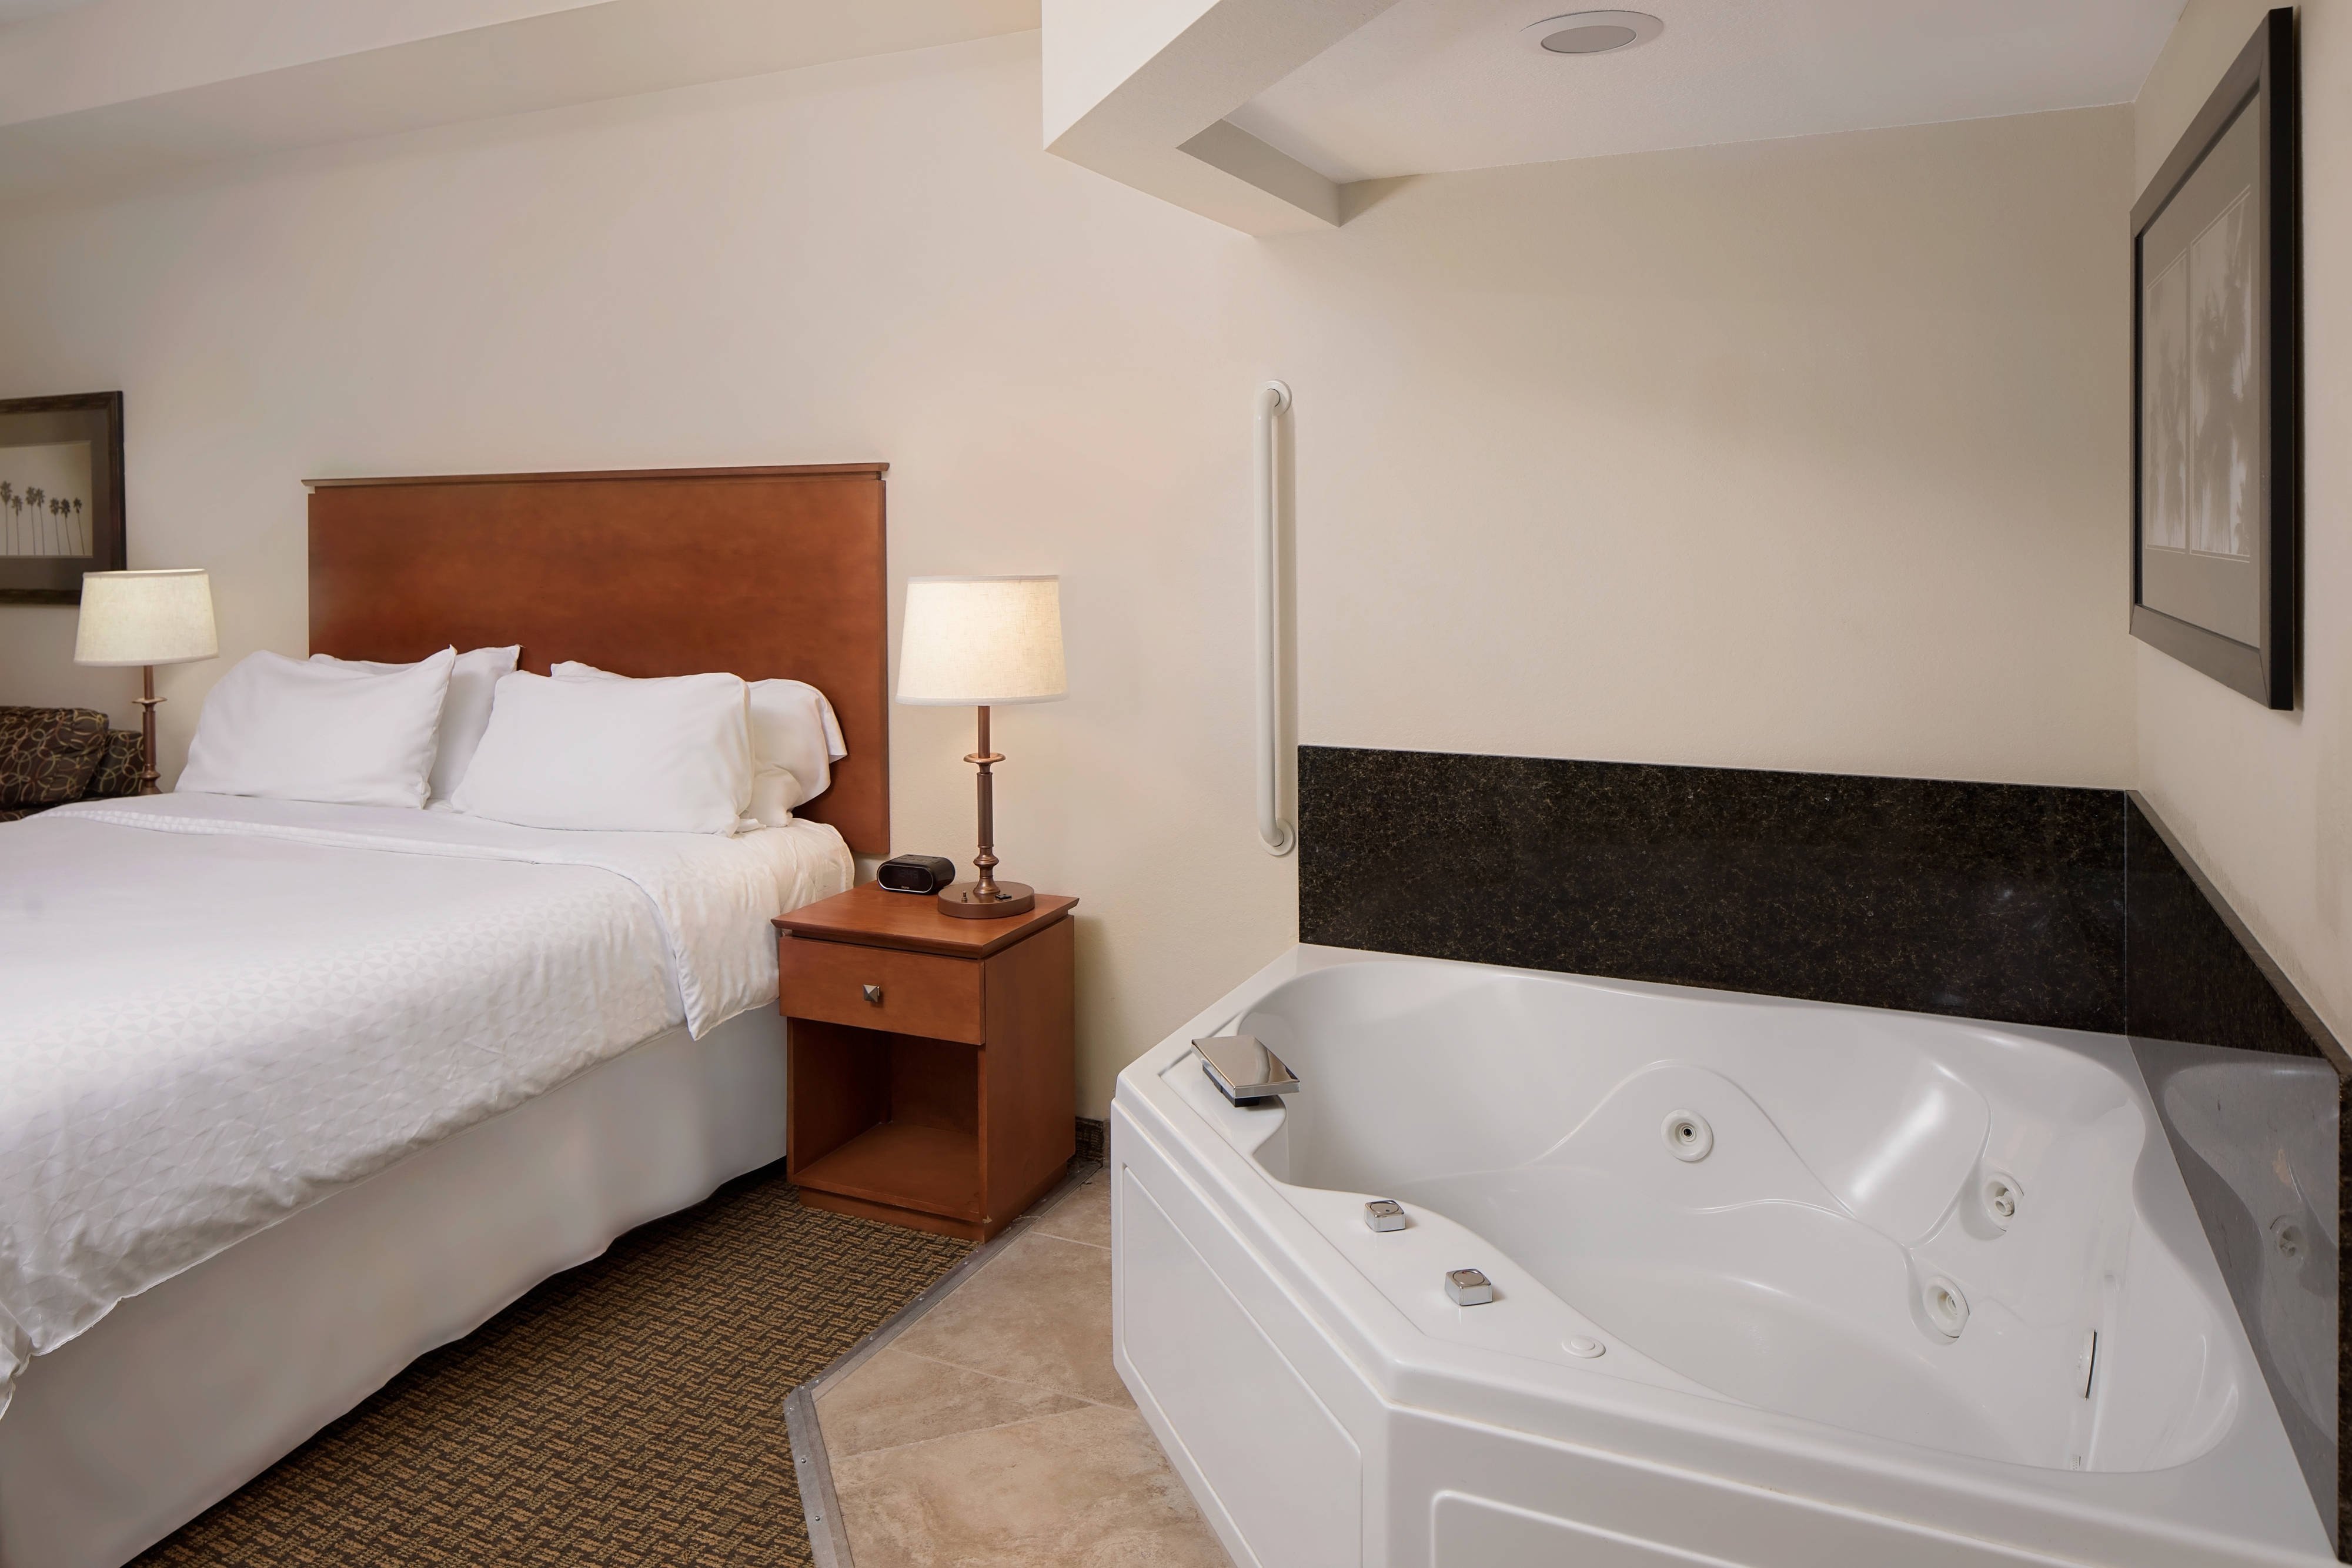 Guest Room with Whirlpool Tub